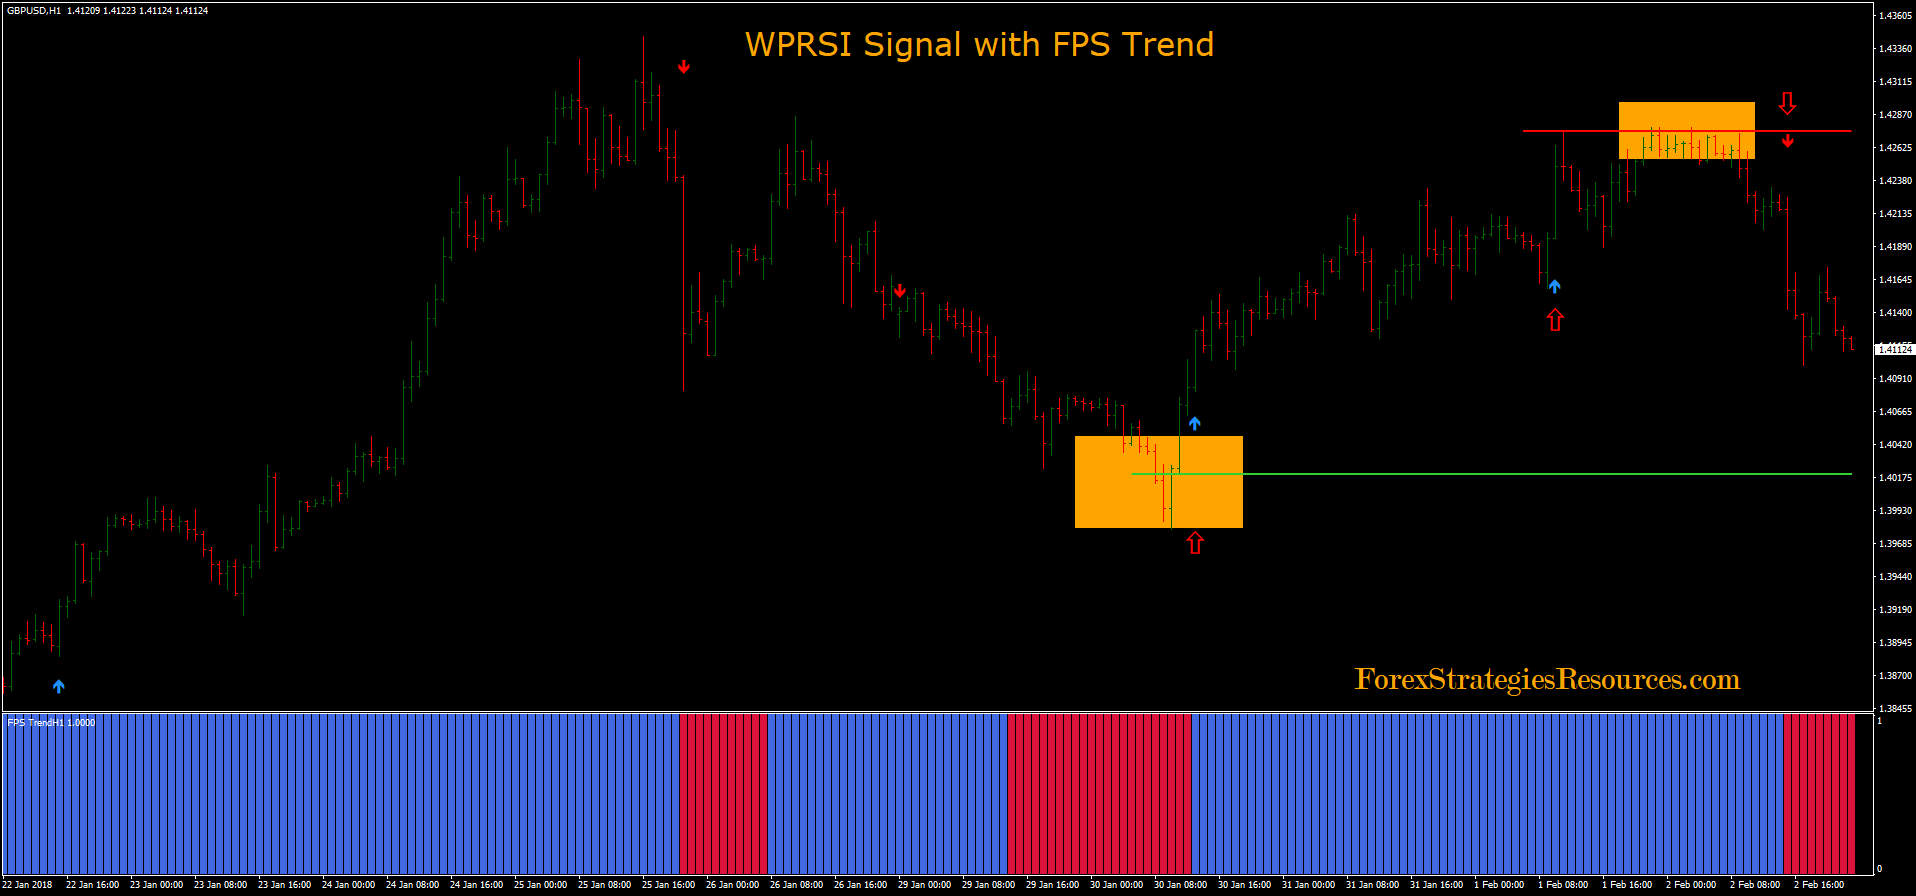 WPRSI Signal with FPS Trend - Forex Strategies - Forex Resources